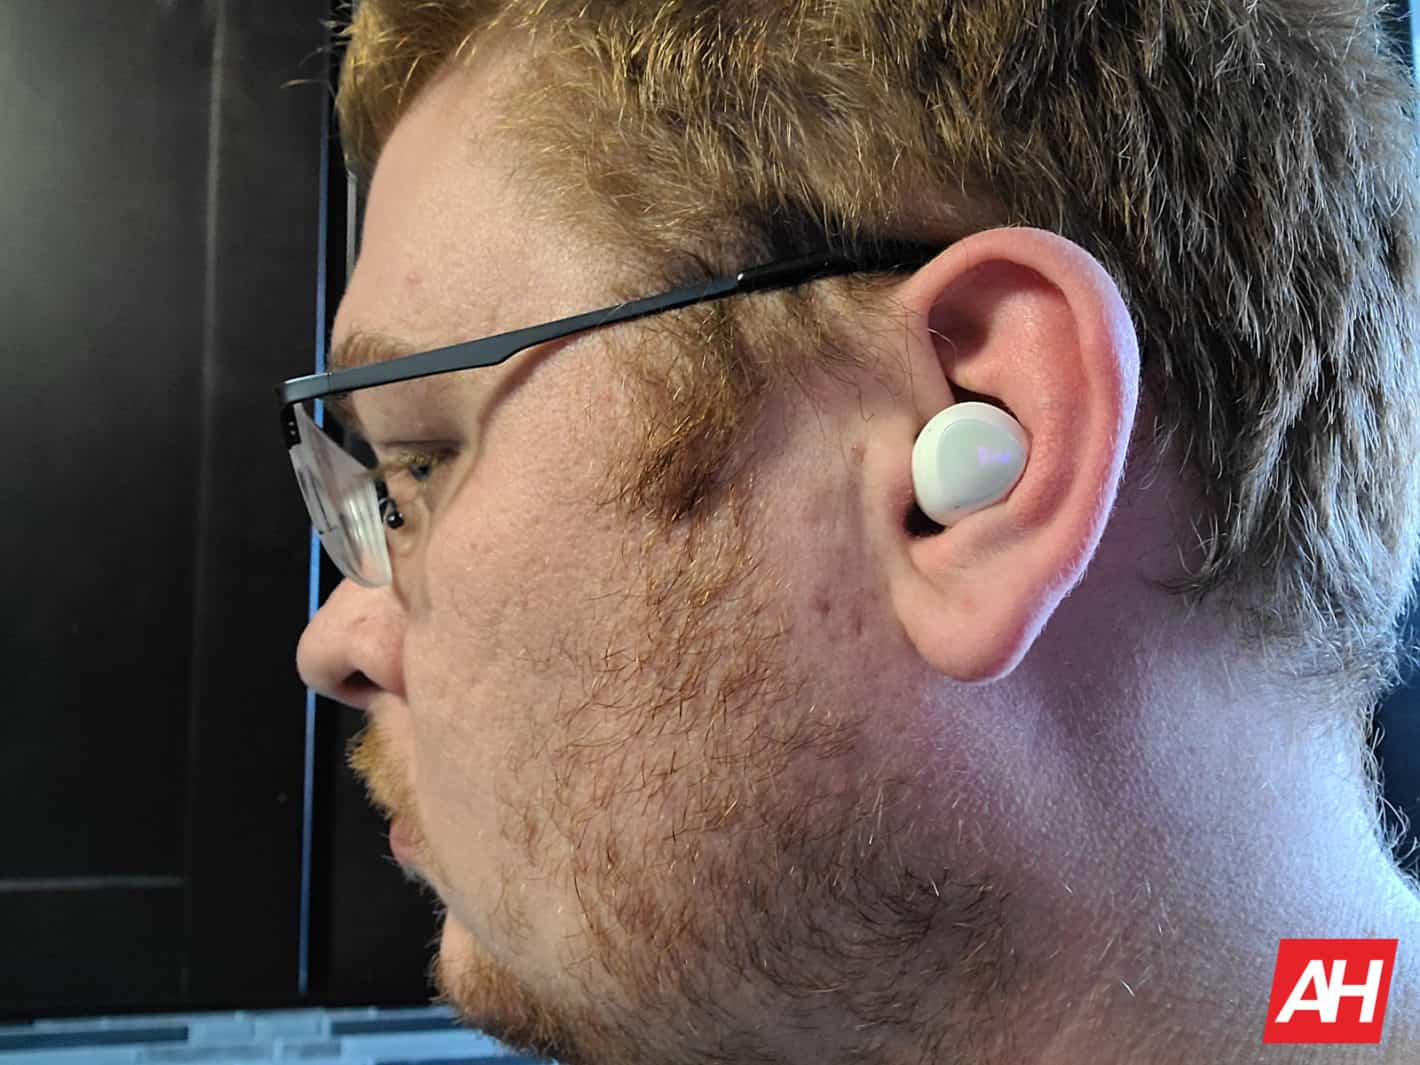 Samsung Galaxy Buds plus AM AH 6